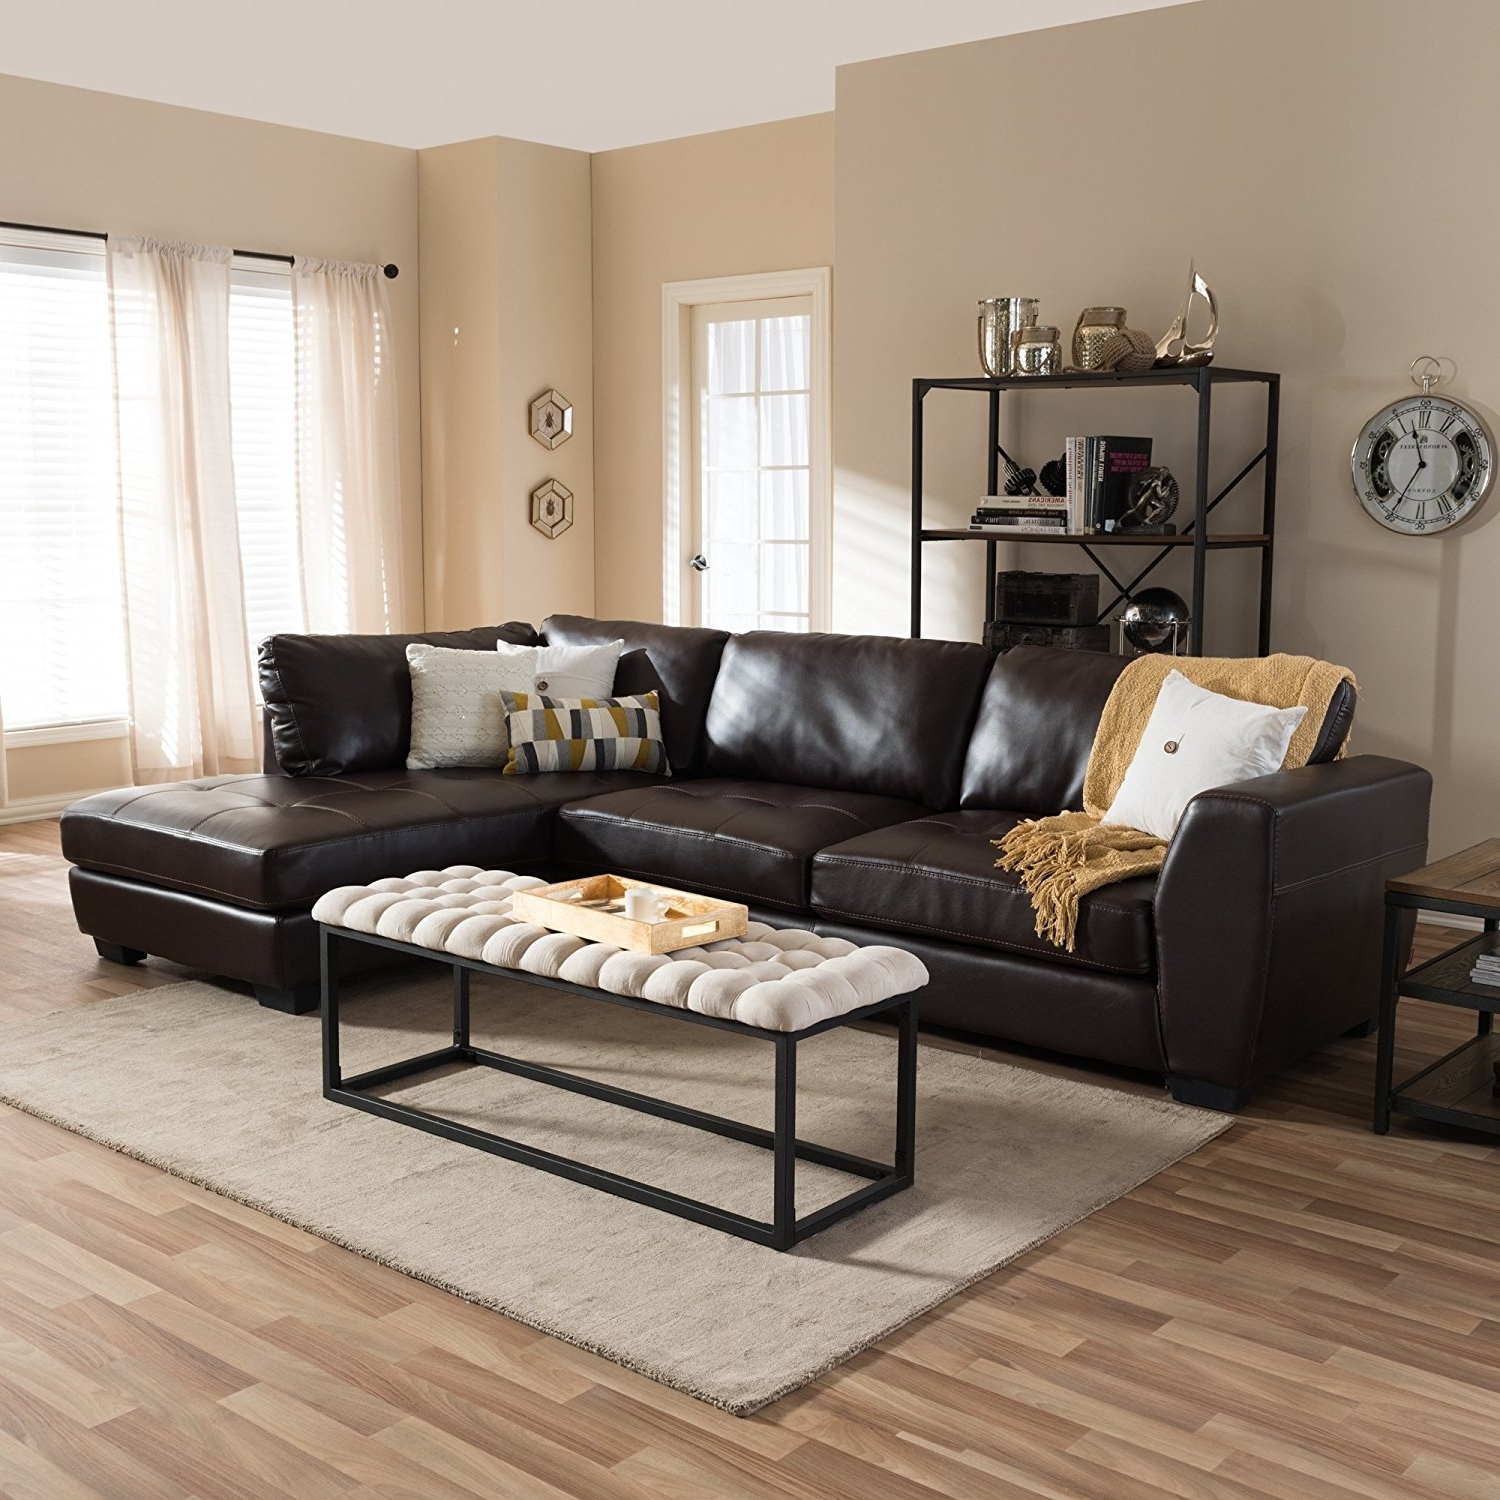 Preferred Amazon: Baxton Studio Orland Bonded Leather Modern Sectional Throughout Leather Sectional Sofas With Chaise (View 14 of 15)